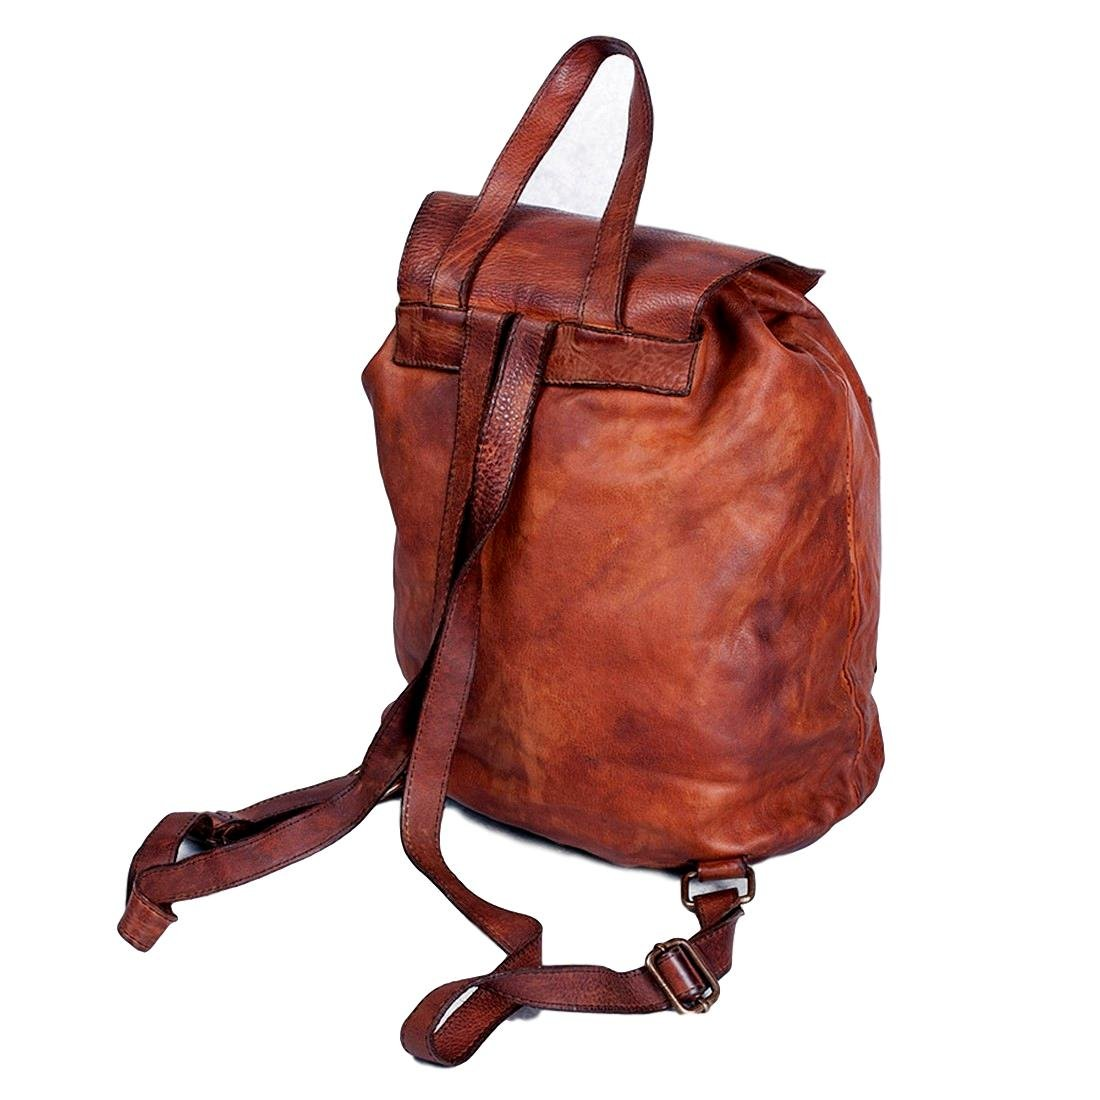 Backpack Soft Leather 31x21 H37 cm MICHELANGELO ASSISI Michelangelo Genuine Leather Calf-Skin Italy